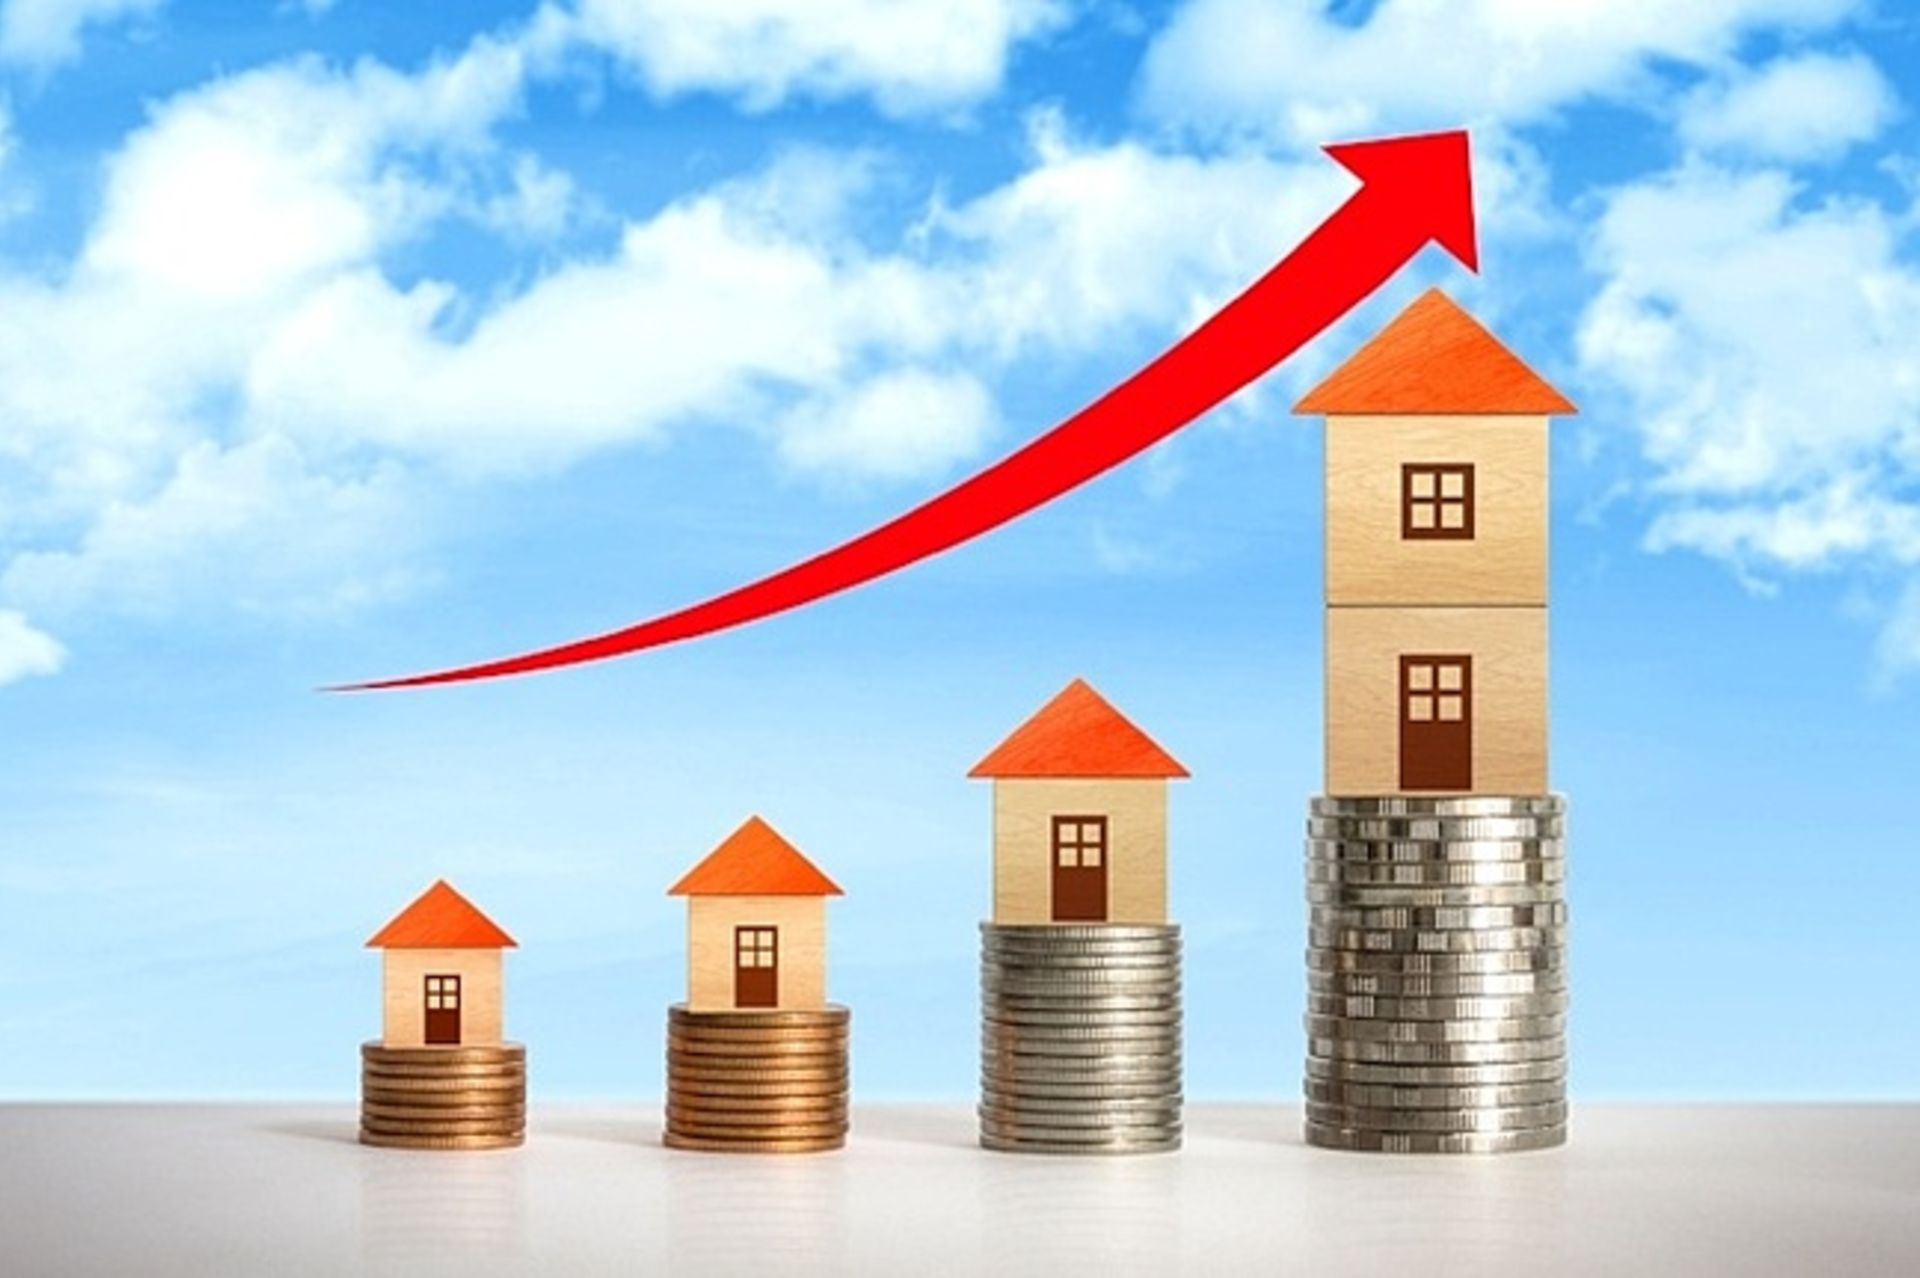 Experience Financial Freedom through Real Estate Investing